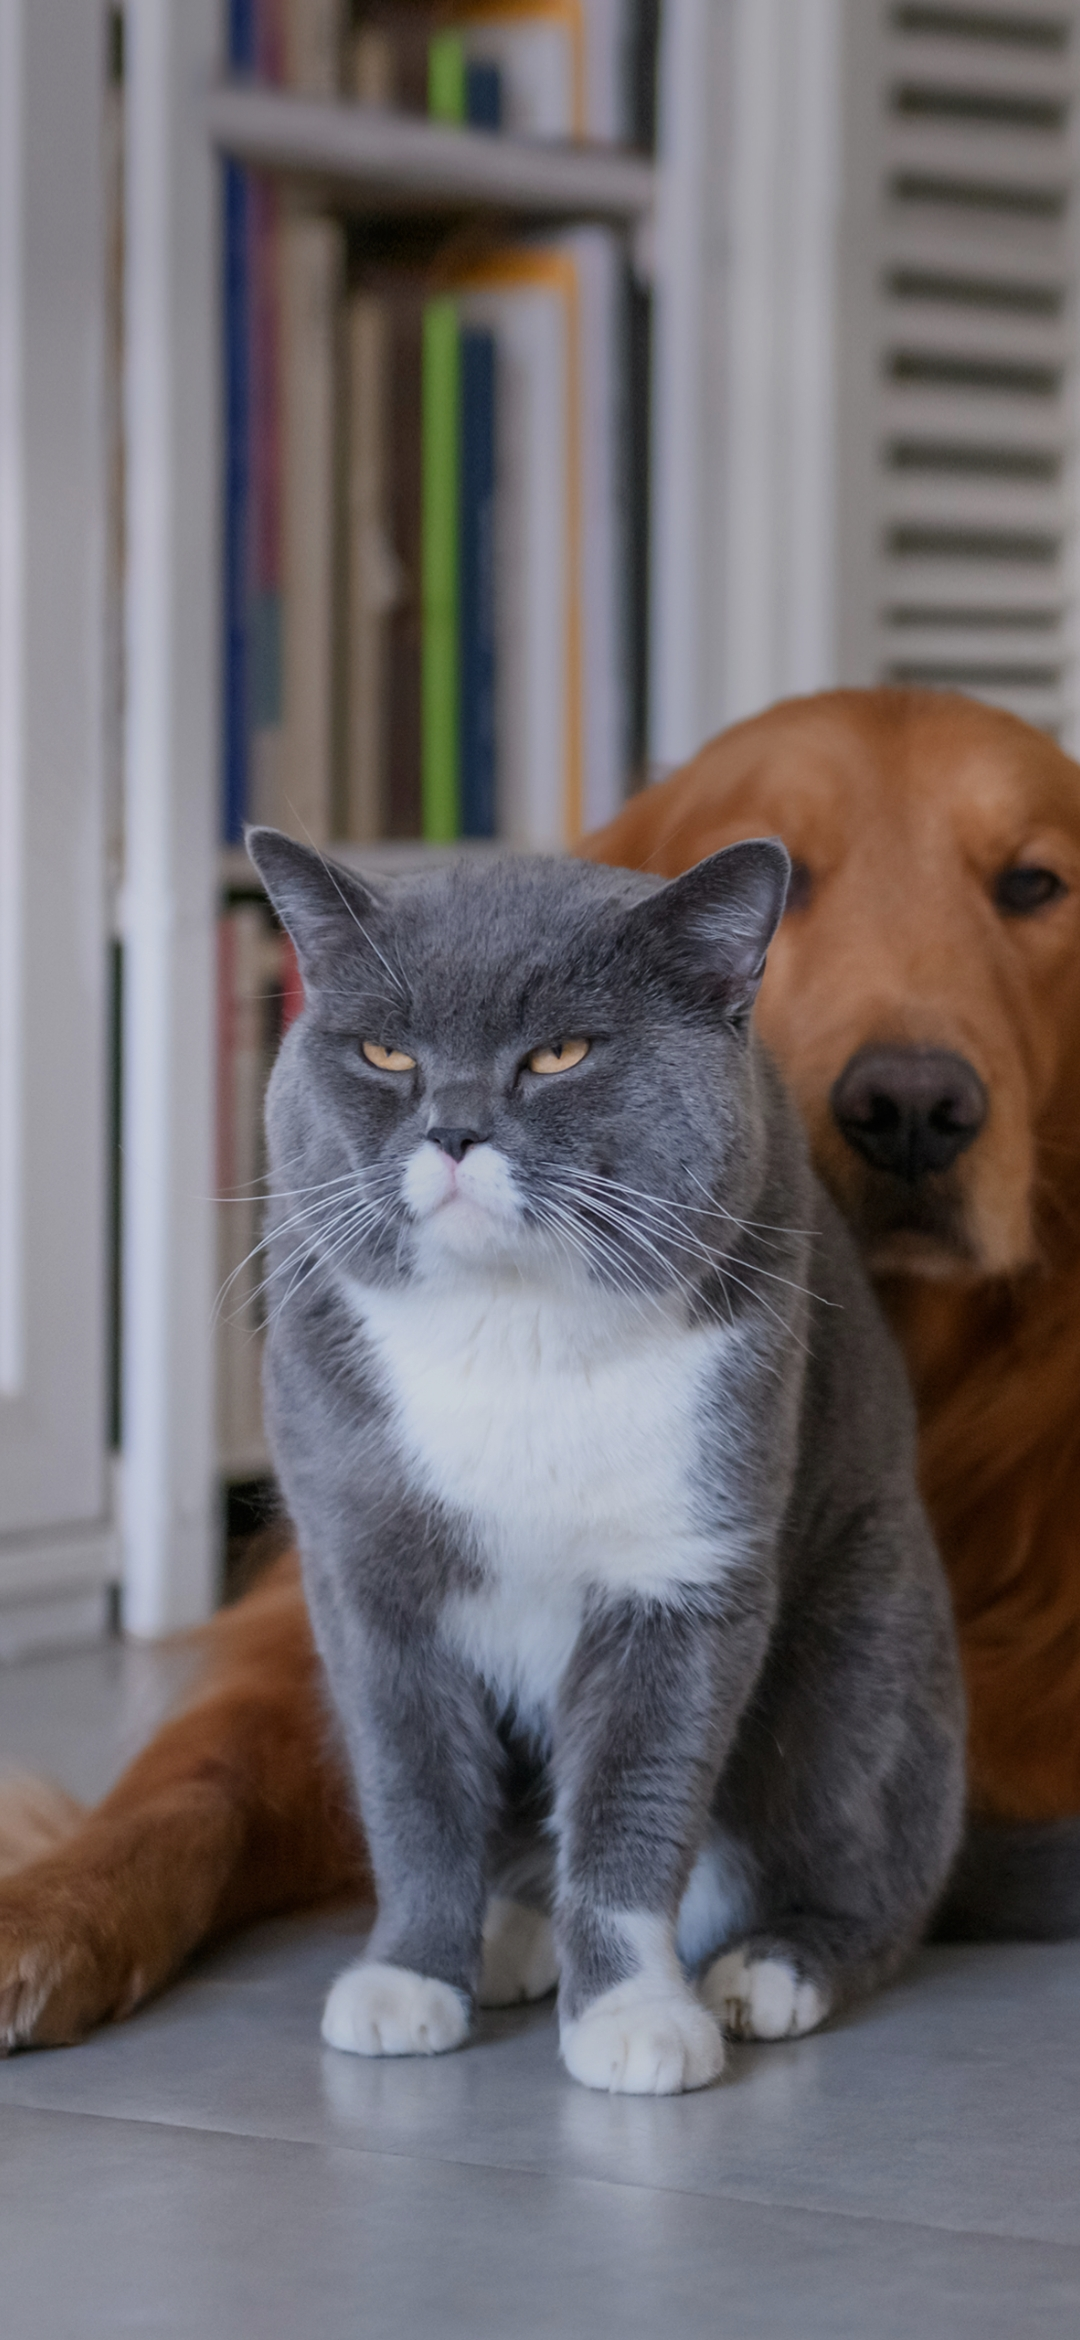 A cat and dog